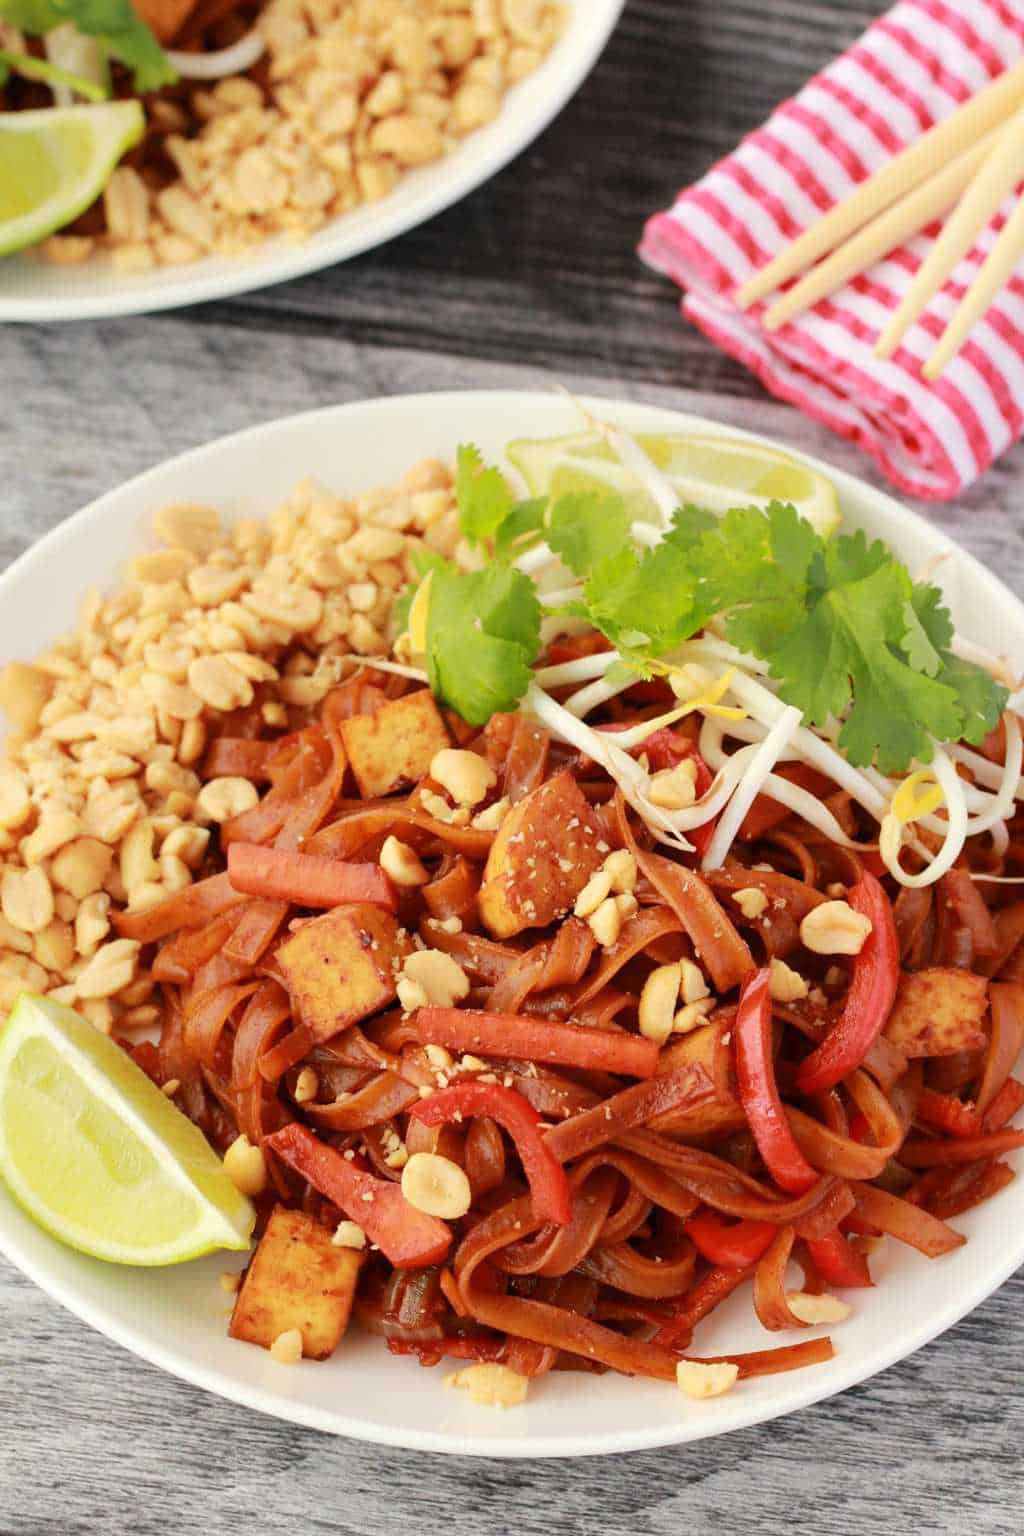 Vegan Pad Thai with Tofu (Gluten-Free)